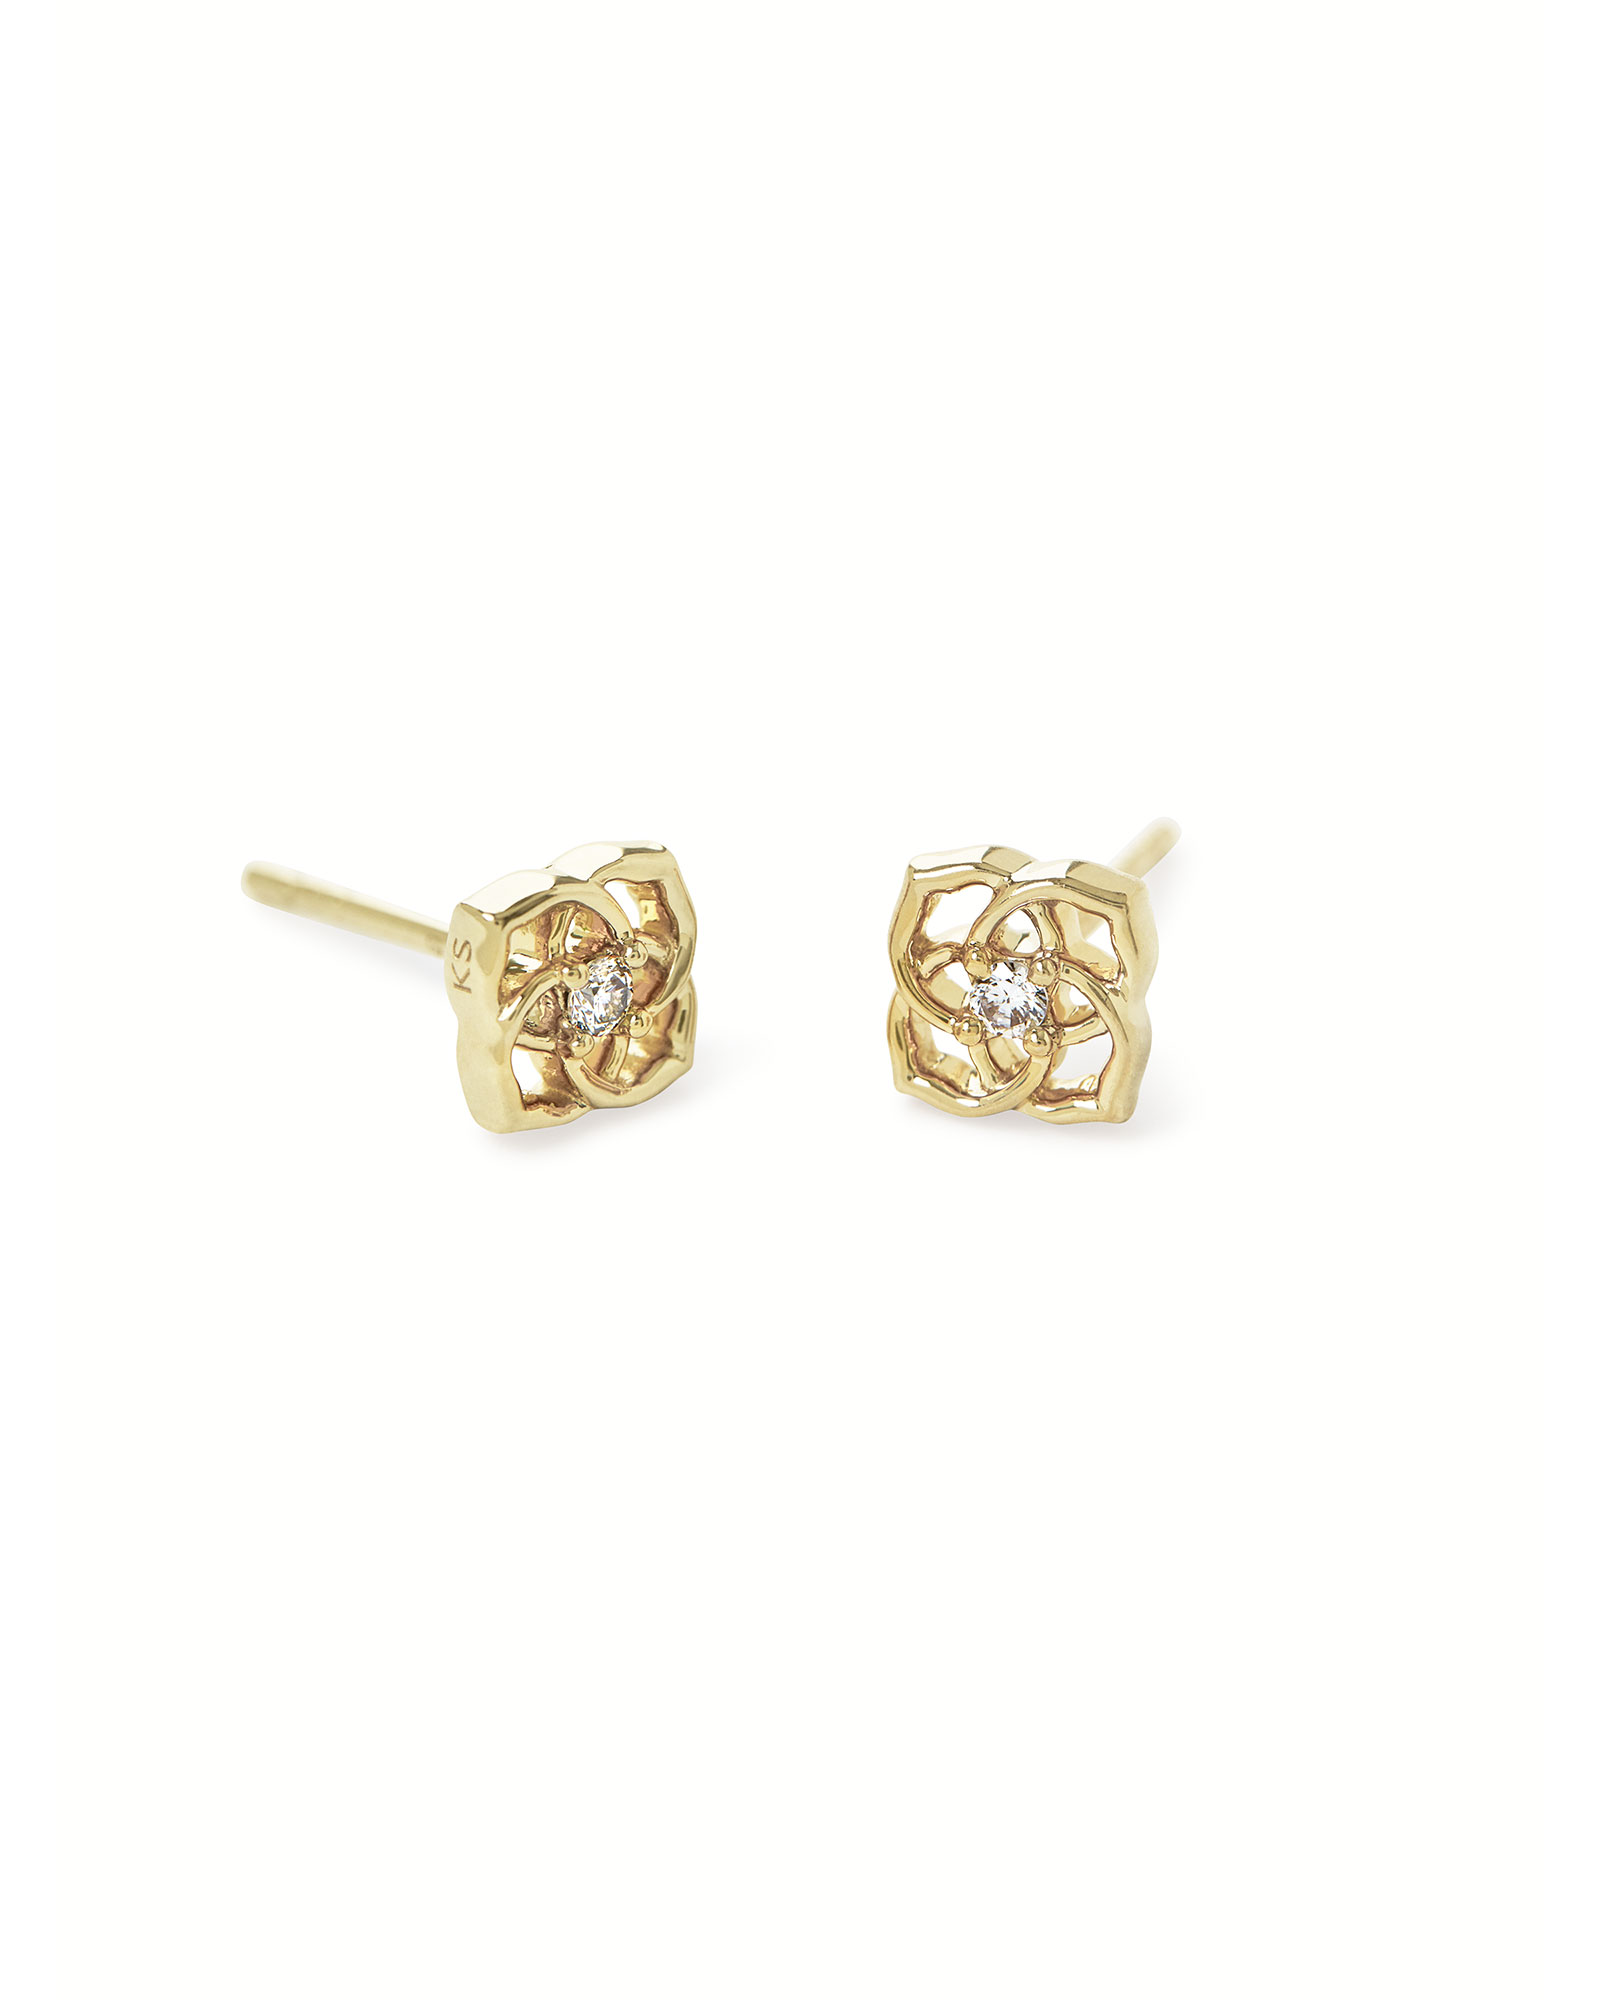 Fleur 14k Yellow Gold Small Stud Earrings in White Diamond